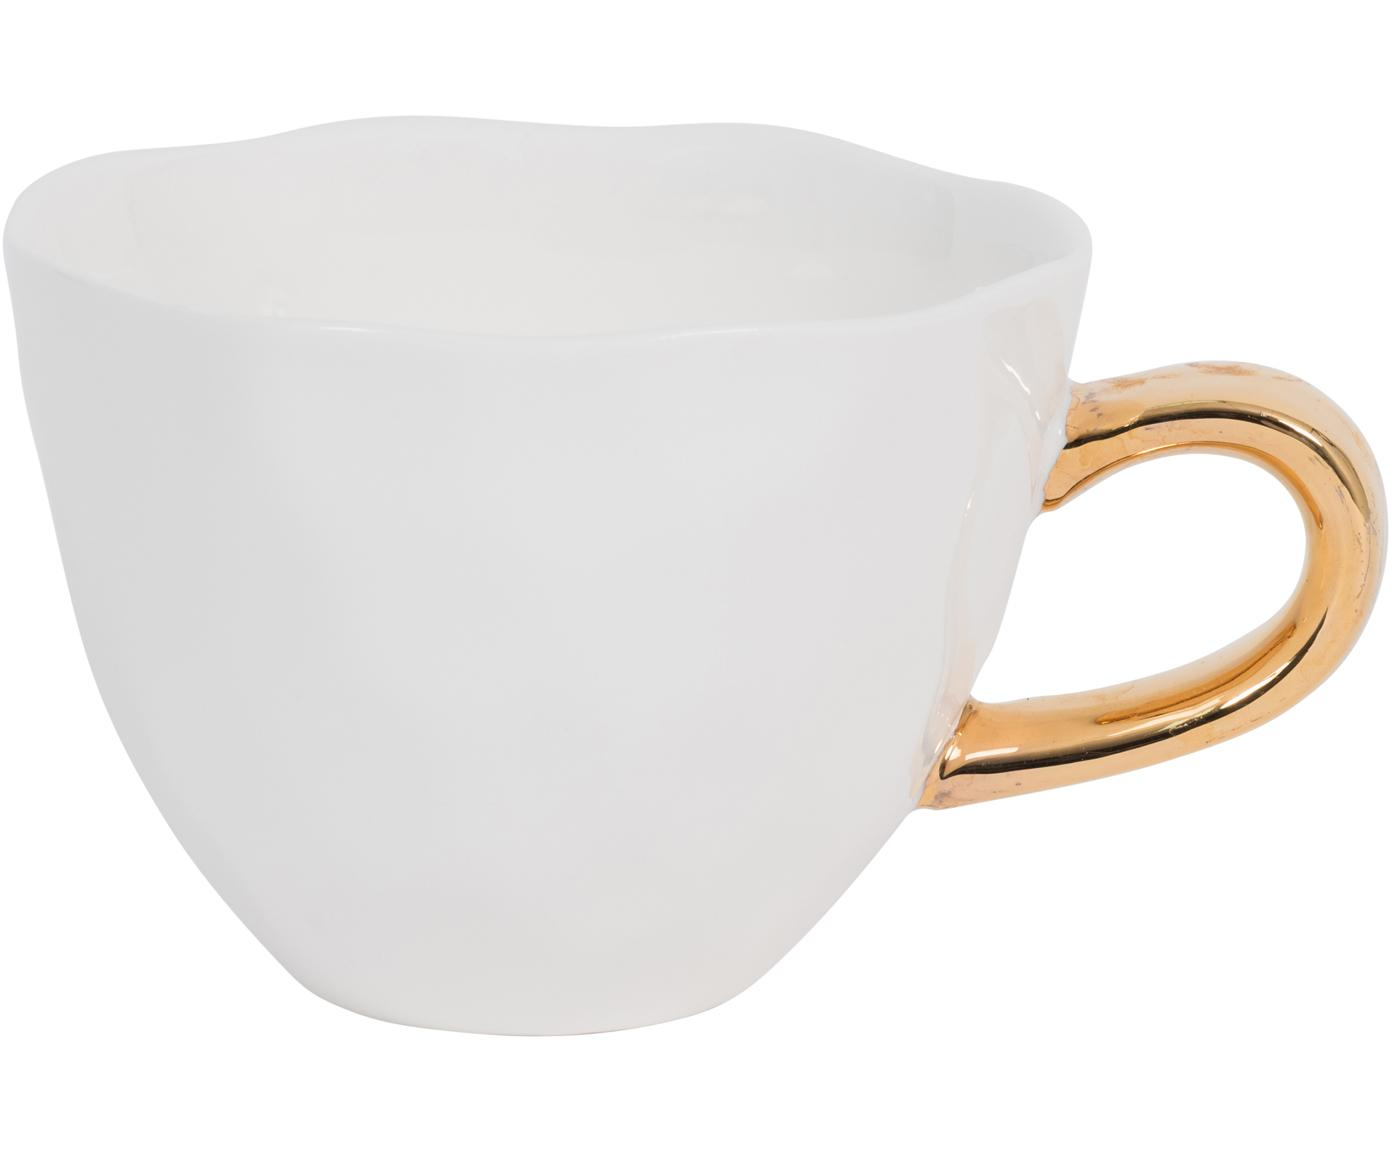 Tazza bianca con manico dorato Good Morning, Terracotta, Bianco, dorato, Ø 11 x Alt. 8 cm